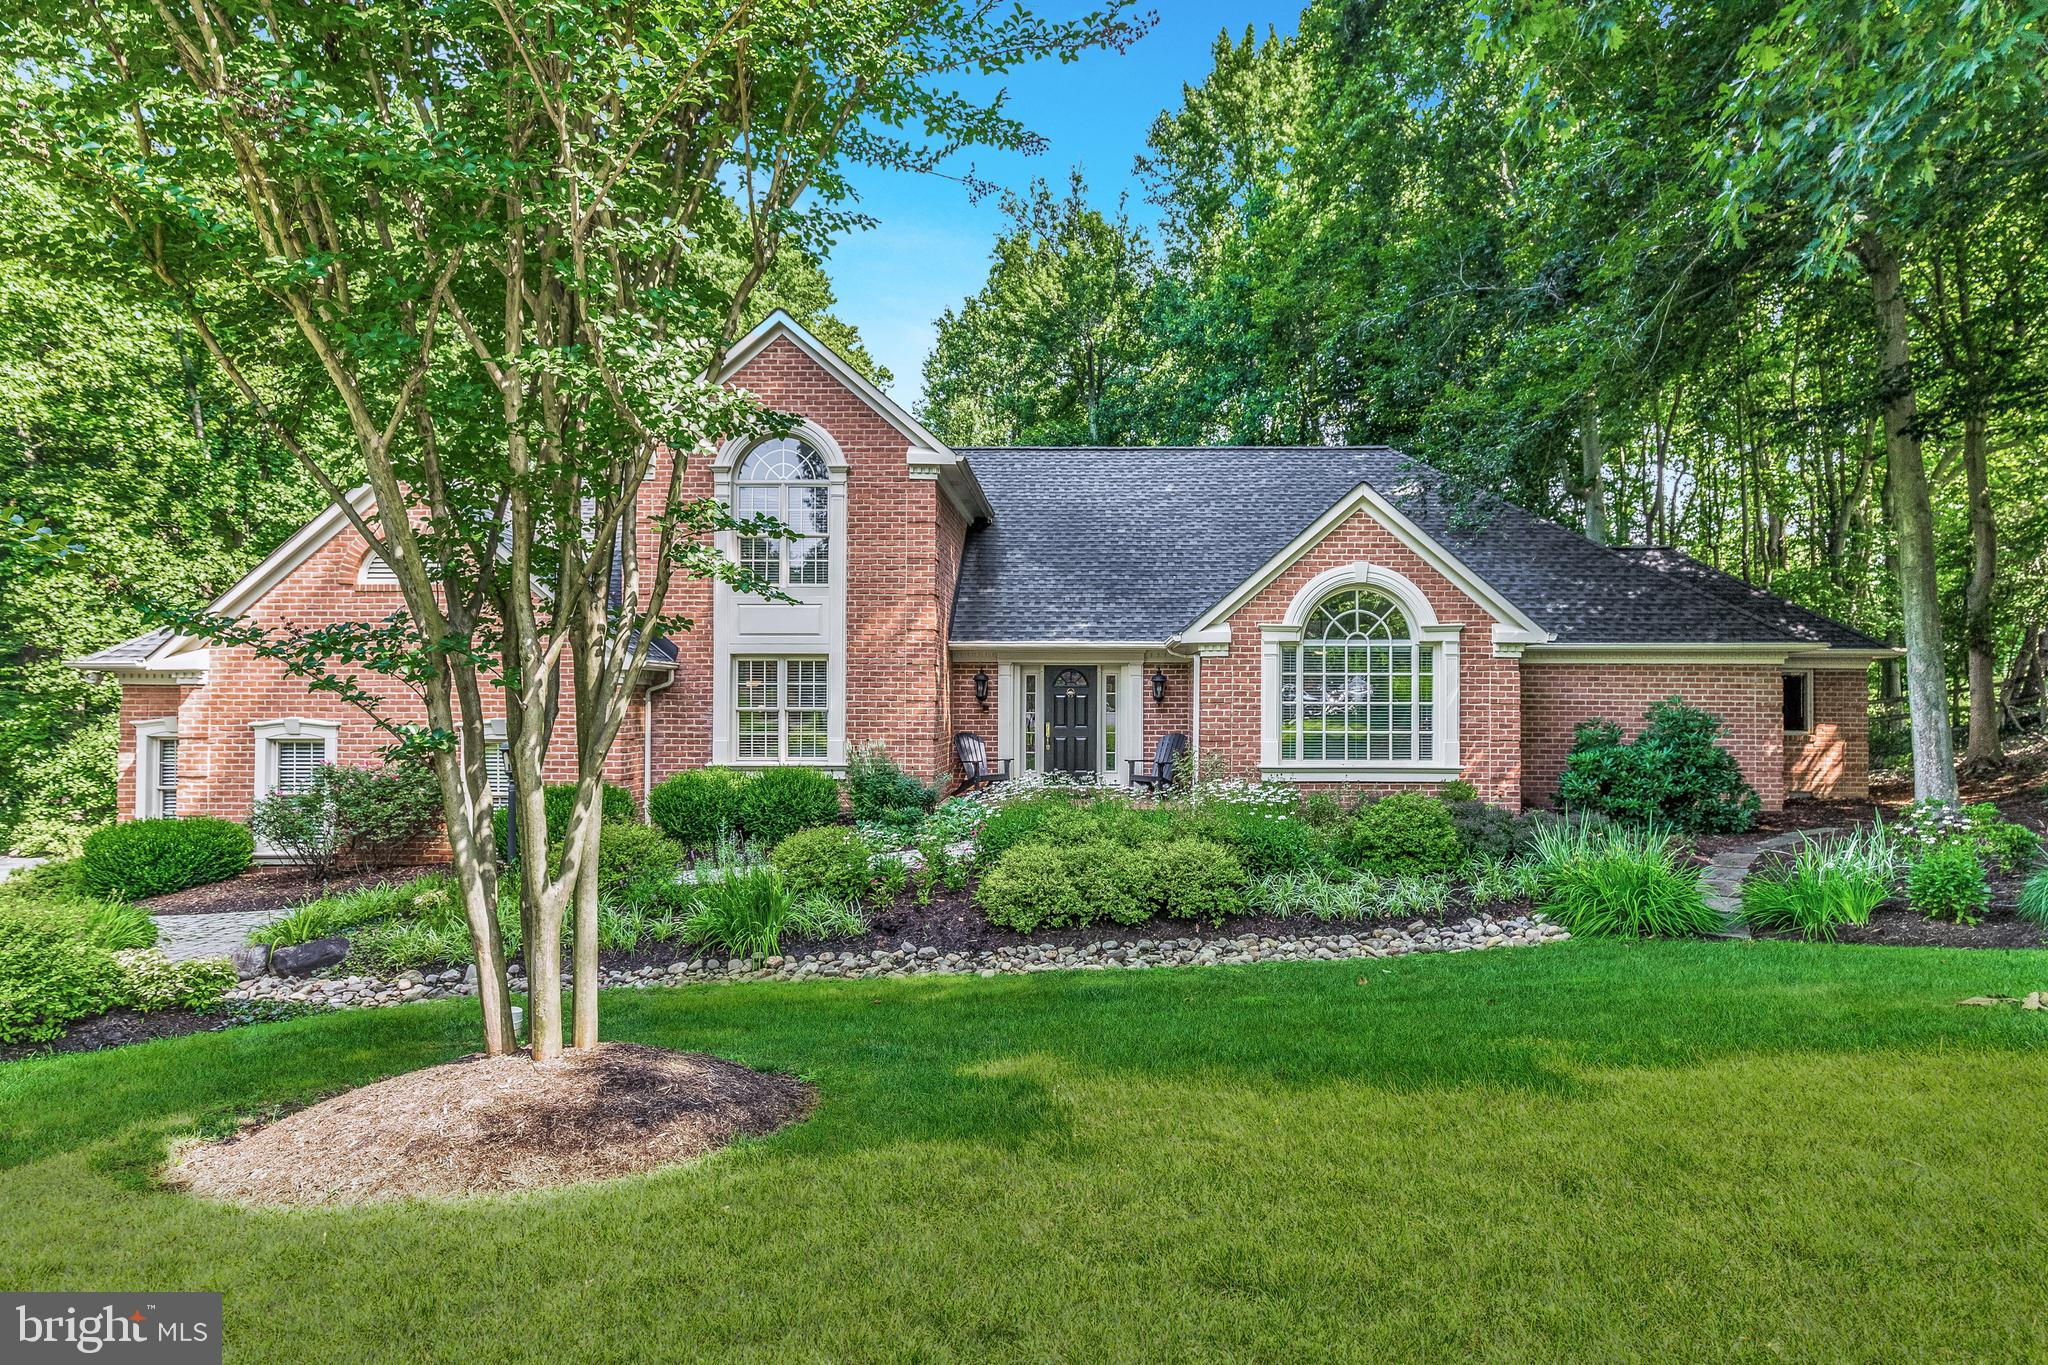 1594 PISCATAWAY ROAD, CROWNSVILLE, MD 21032